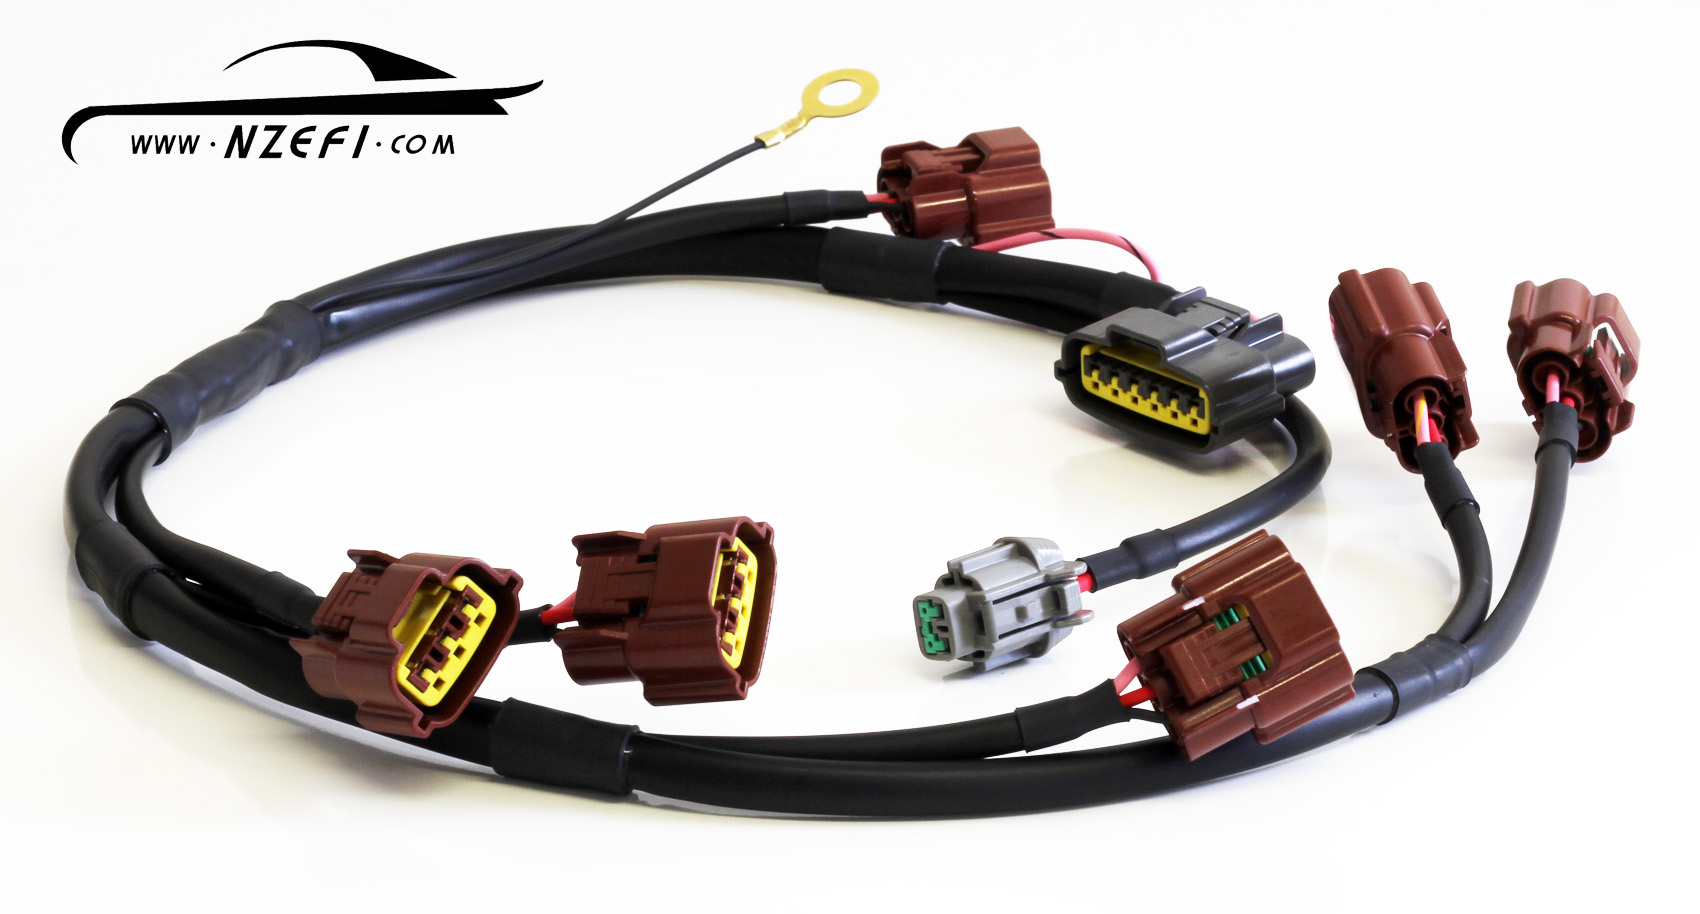 Nissan Skyline R33 S1 Coil Harness Rb25det Gm Pack Wiring Nzefi Series 1 Ignition Sub